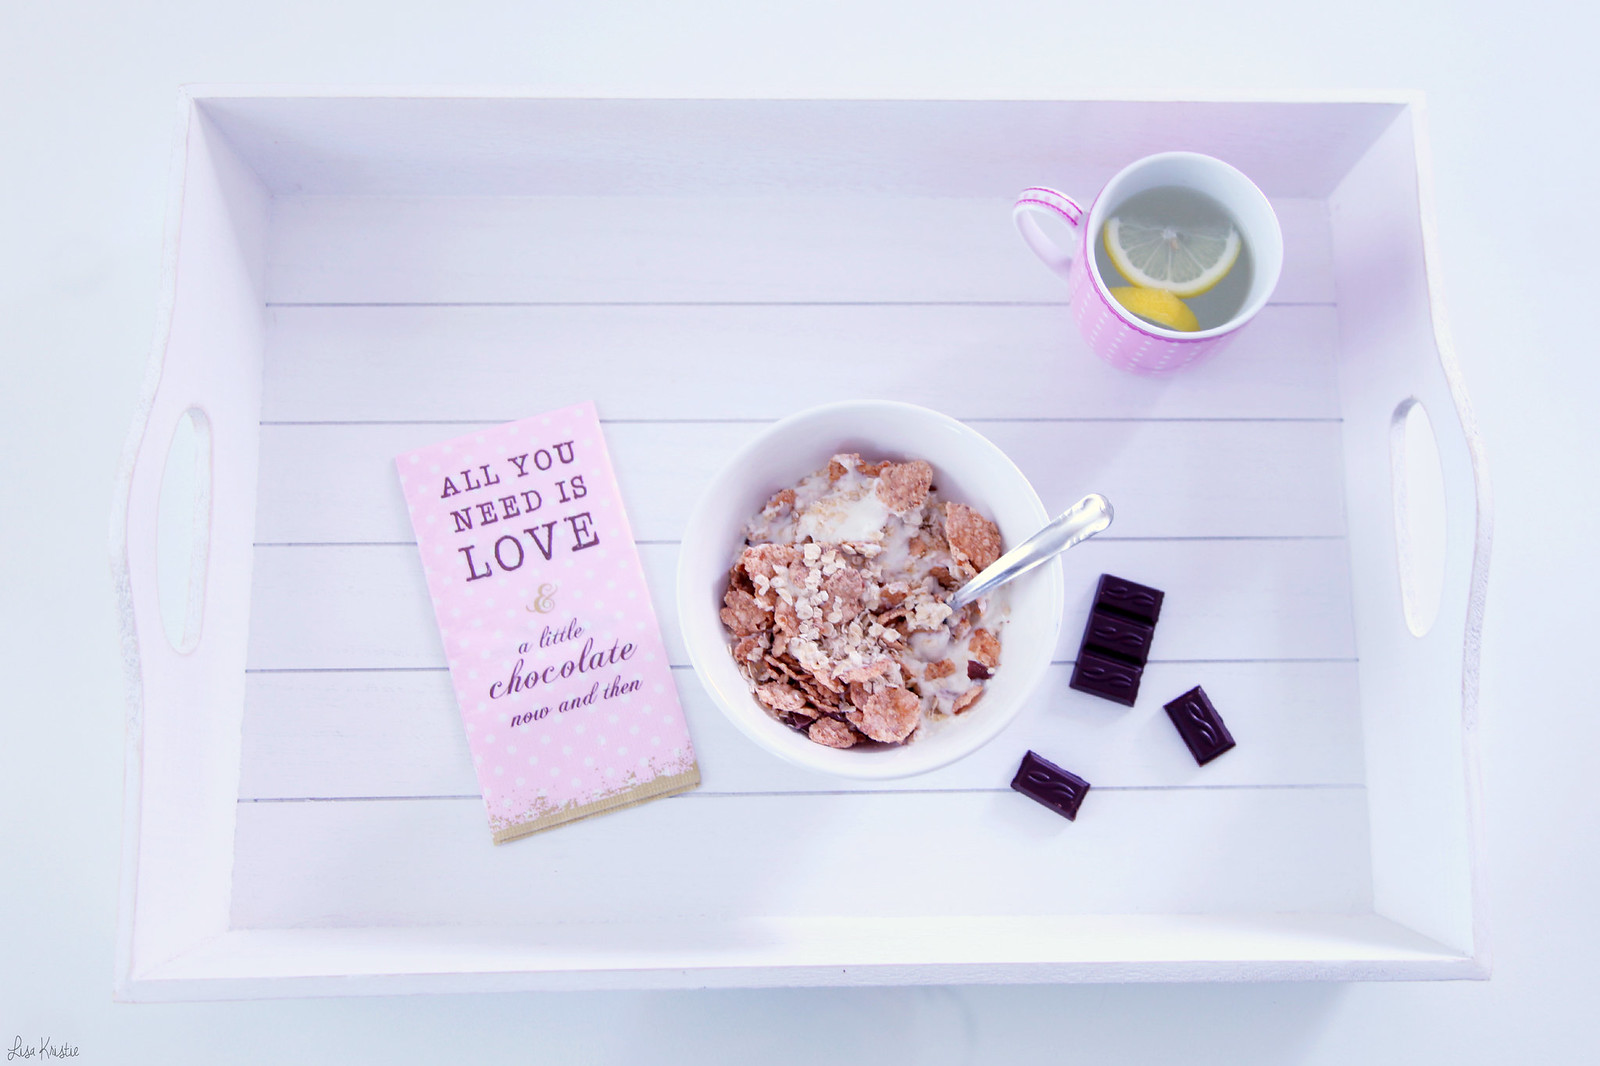 healthy snack bowl tray vanilla yogurt whole grain cereal oatmeal dark chocolate lemon tea pink cup clayre & eef white wooden girly paper napkin all you need is love and a little bit of chocolate now and then recipe home lifestyle blog